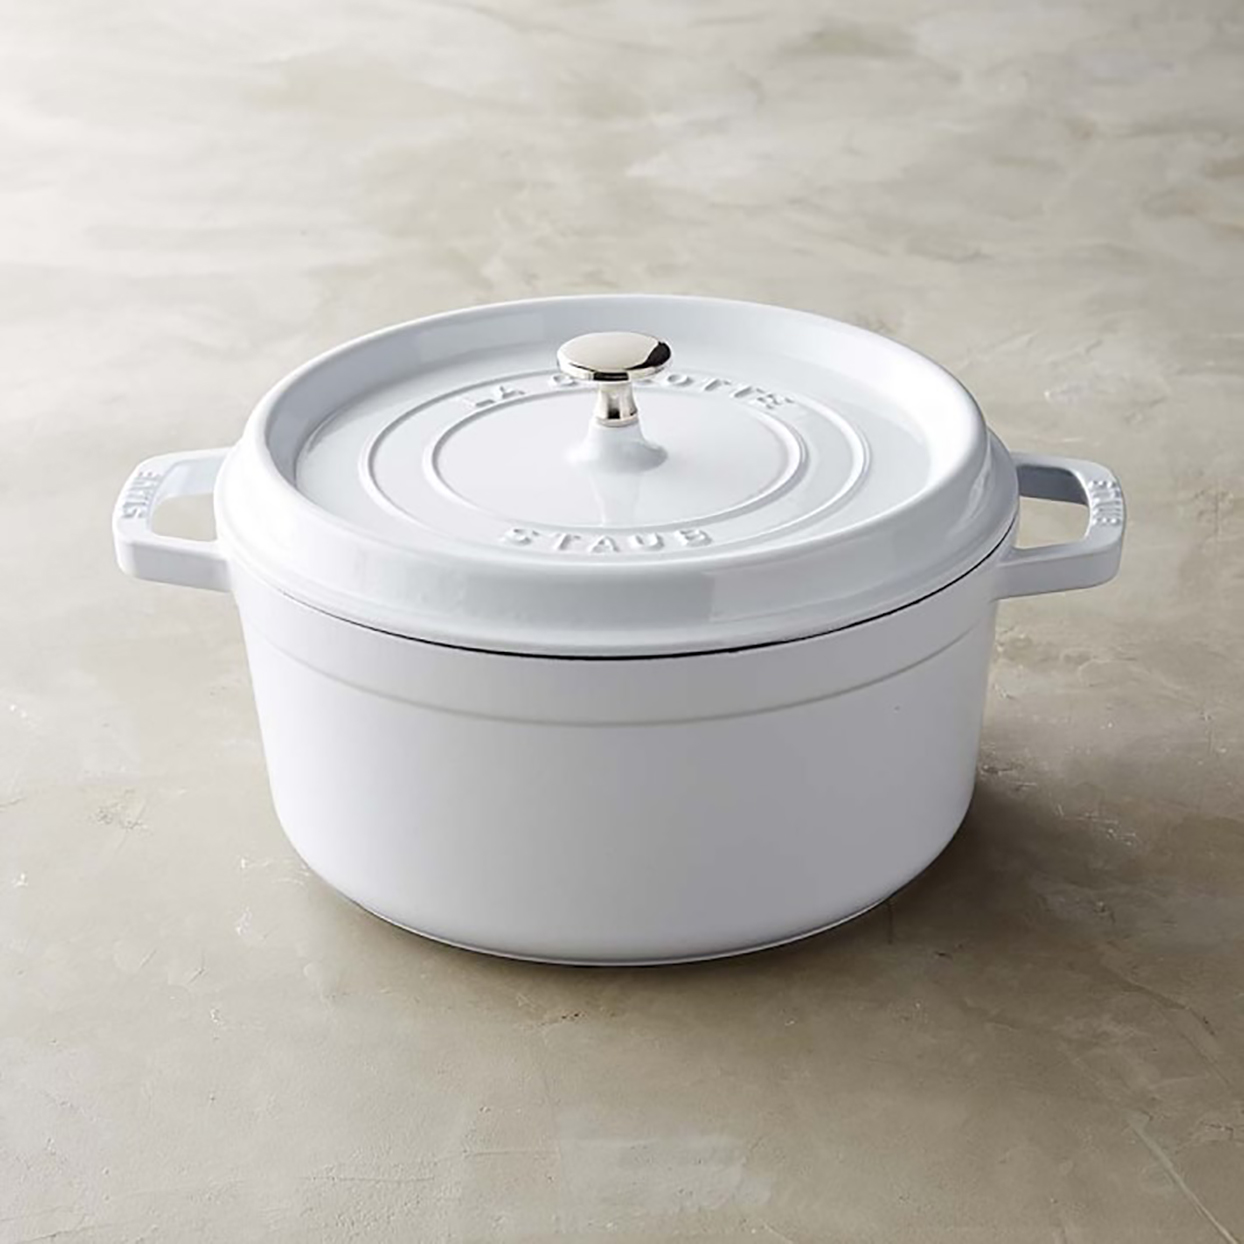 small dutch oven by Staub